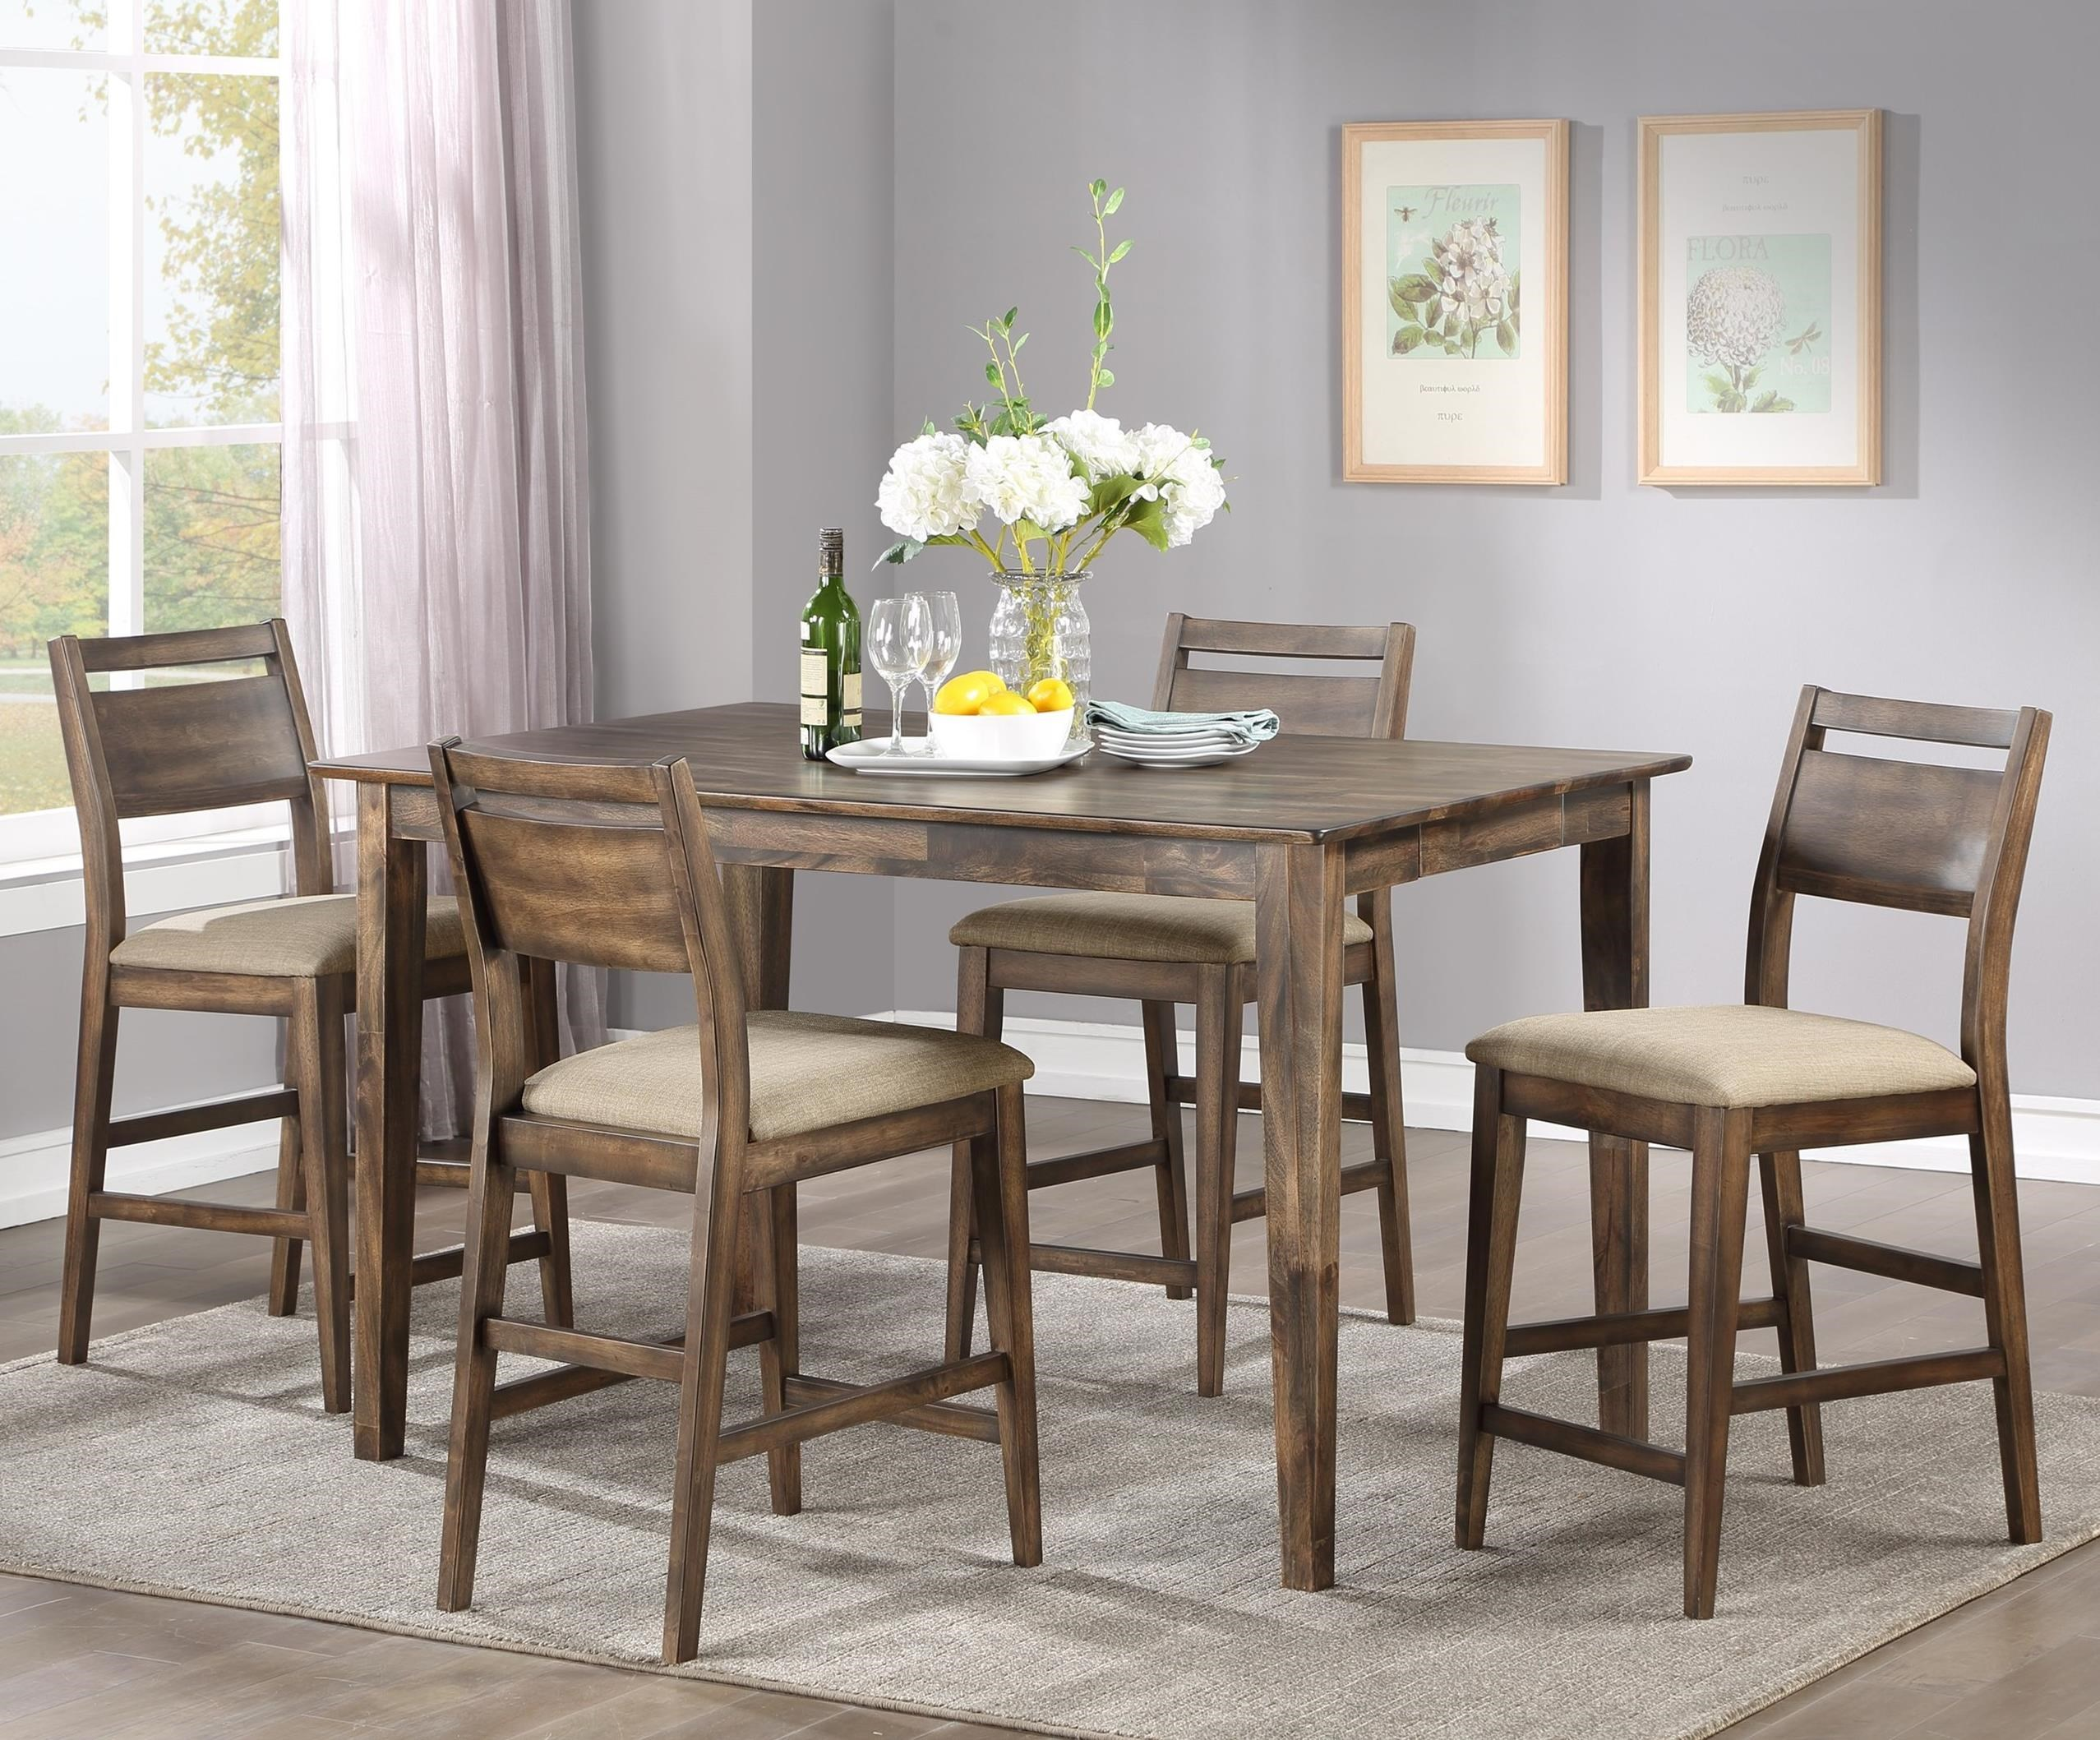 Zoey 5-Piece Counter Table Set by Winners Only at Michael Alan Furniture & Design